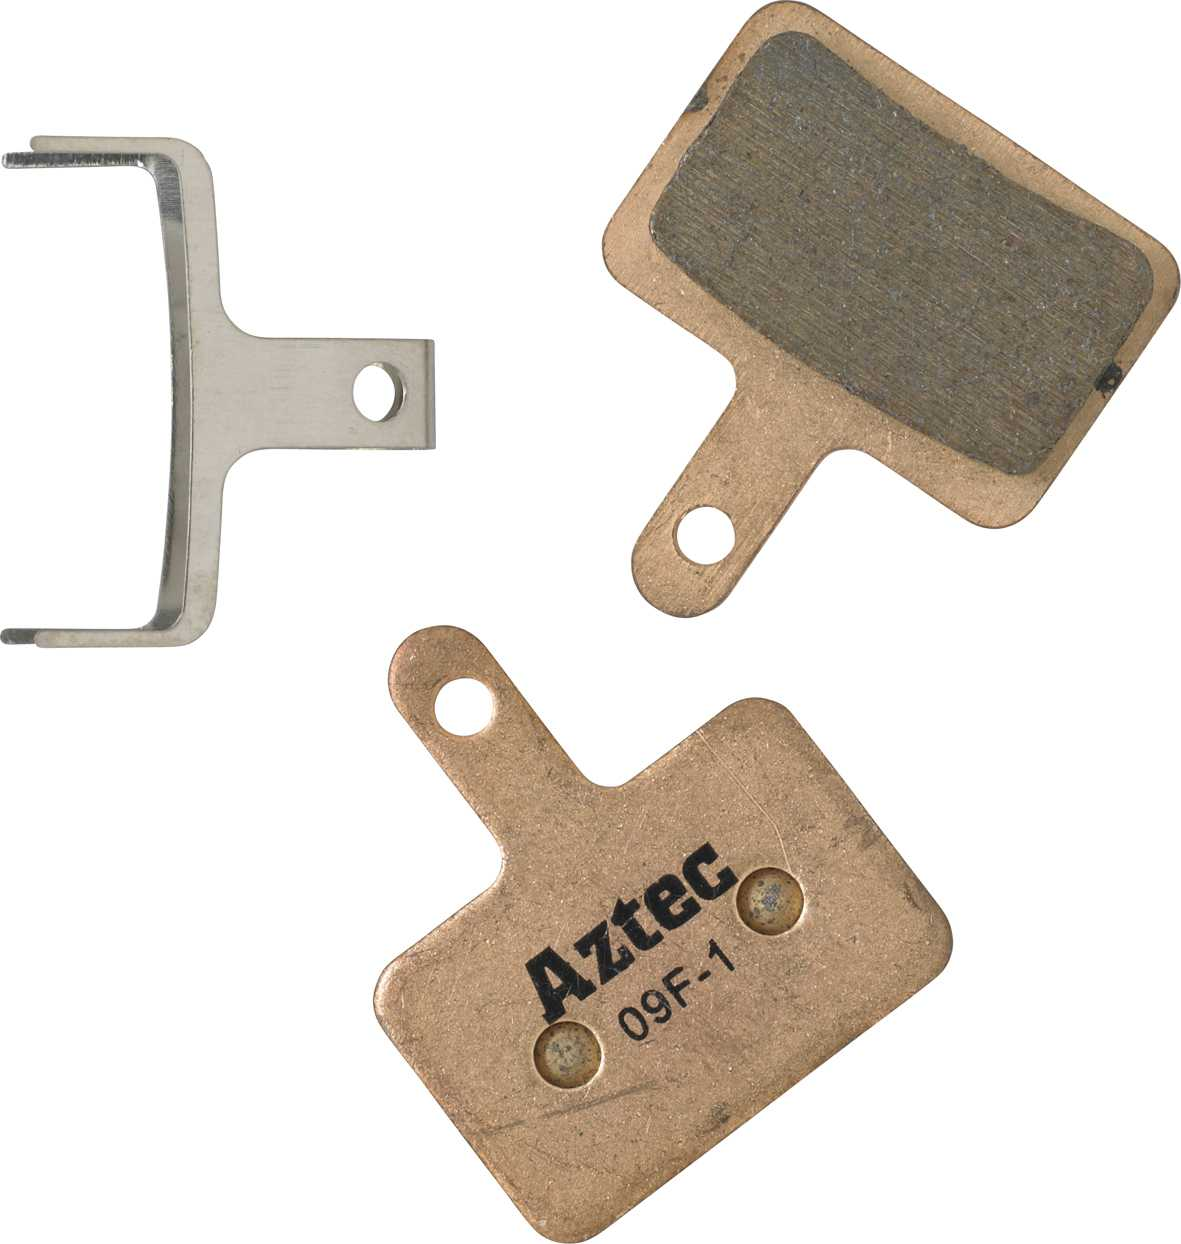 Aztec Sintered Brake Pads for Shimano Deore M515/ M475/C501/C601 Mech/M525